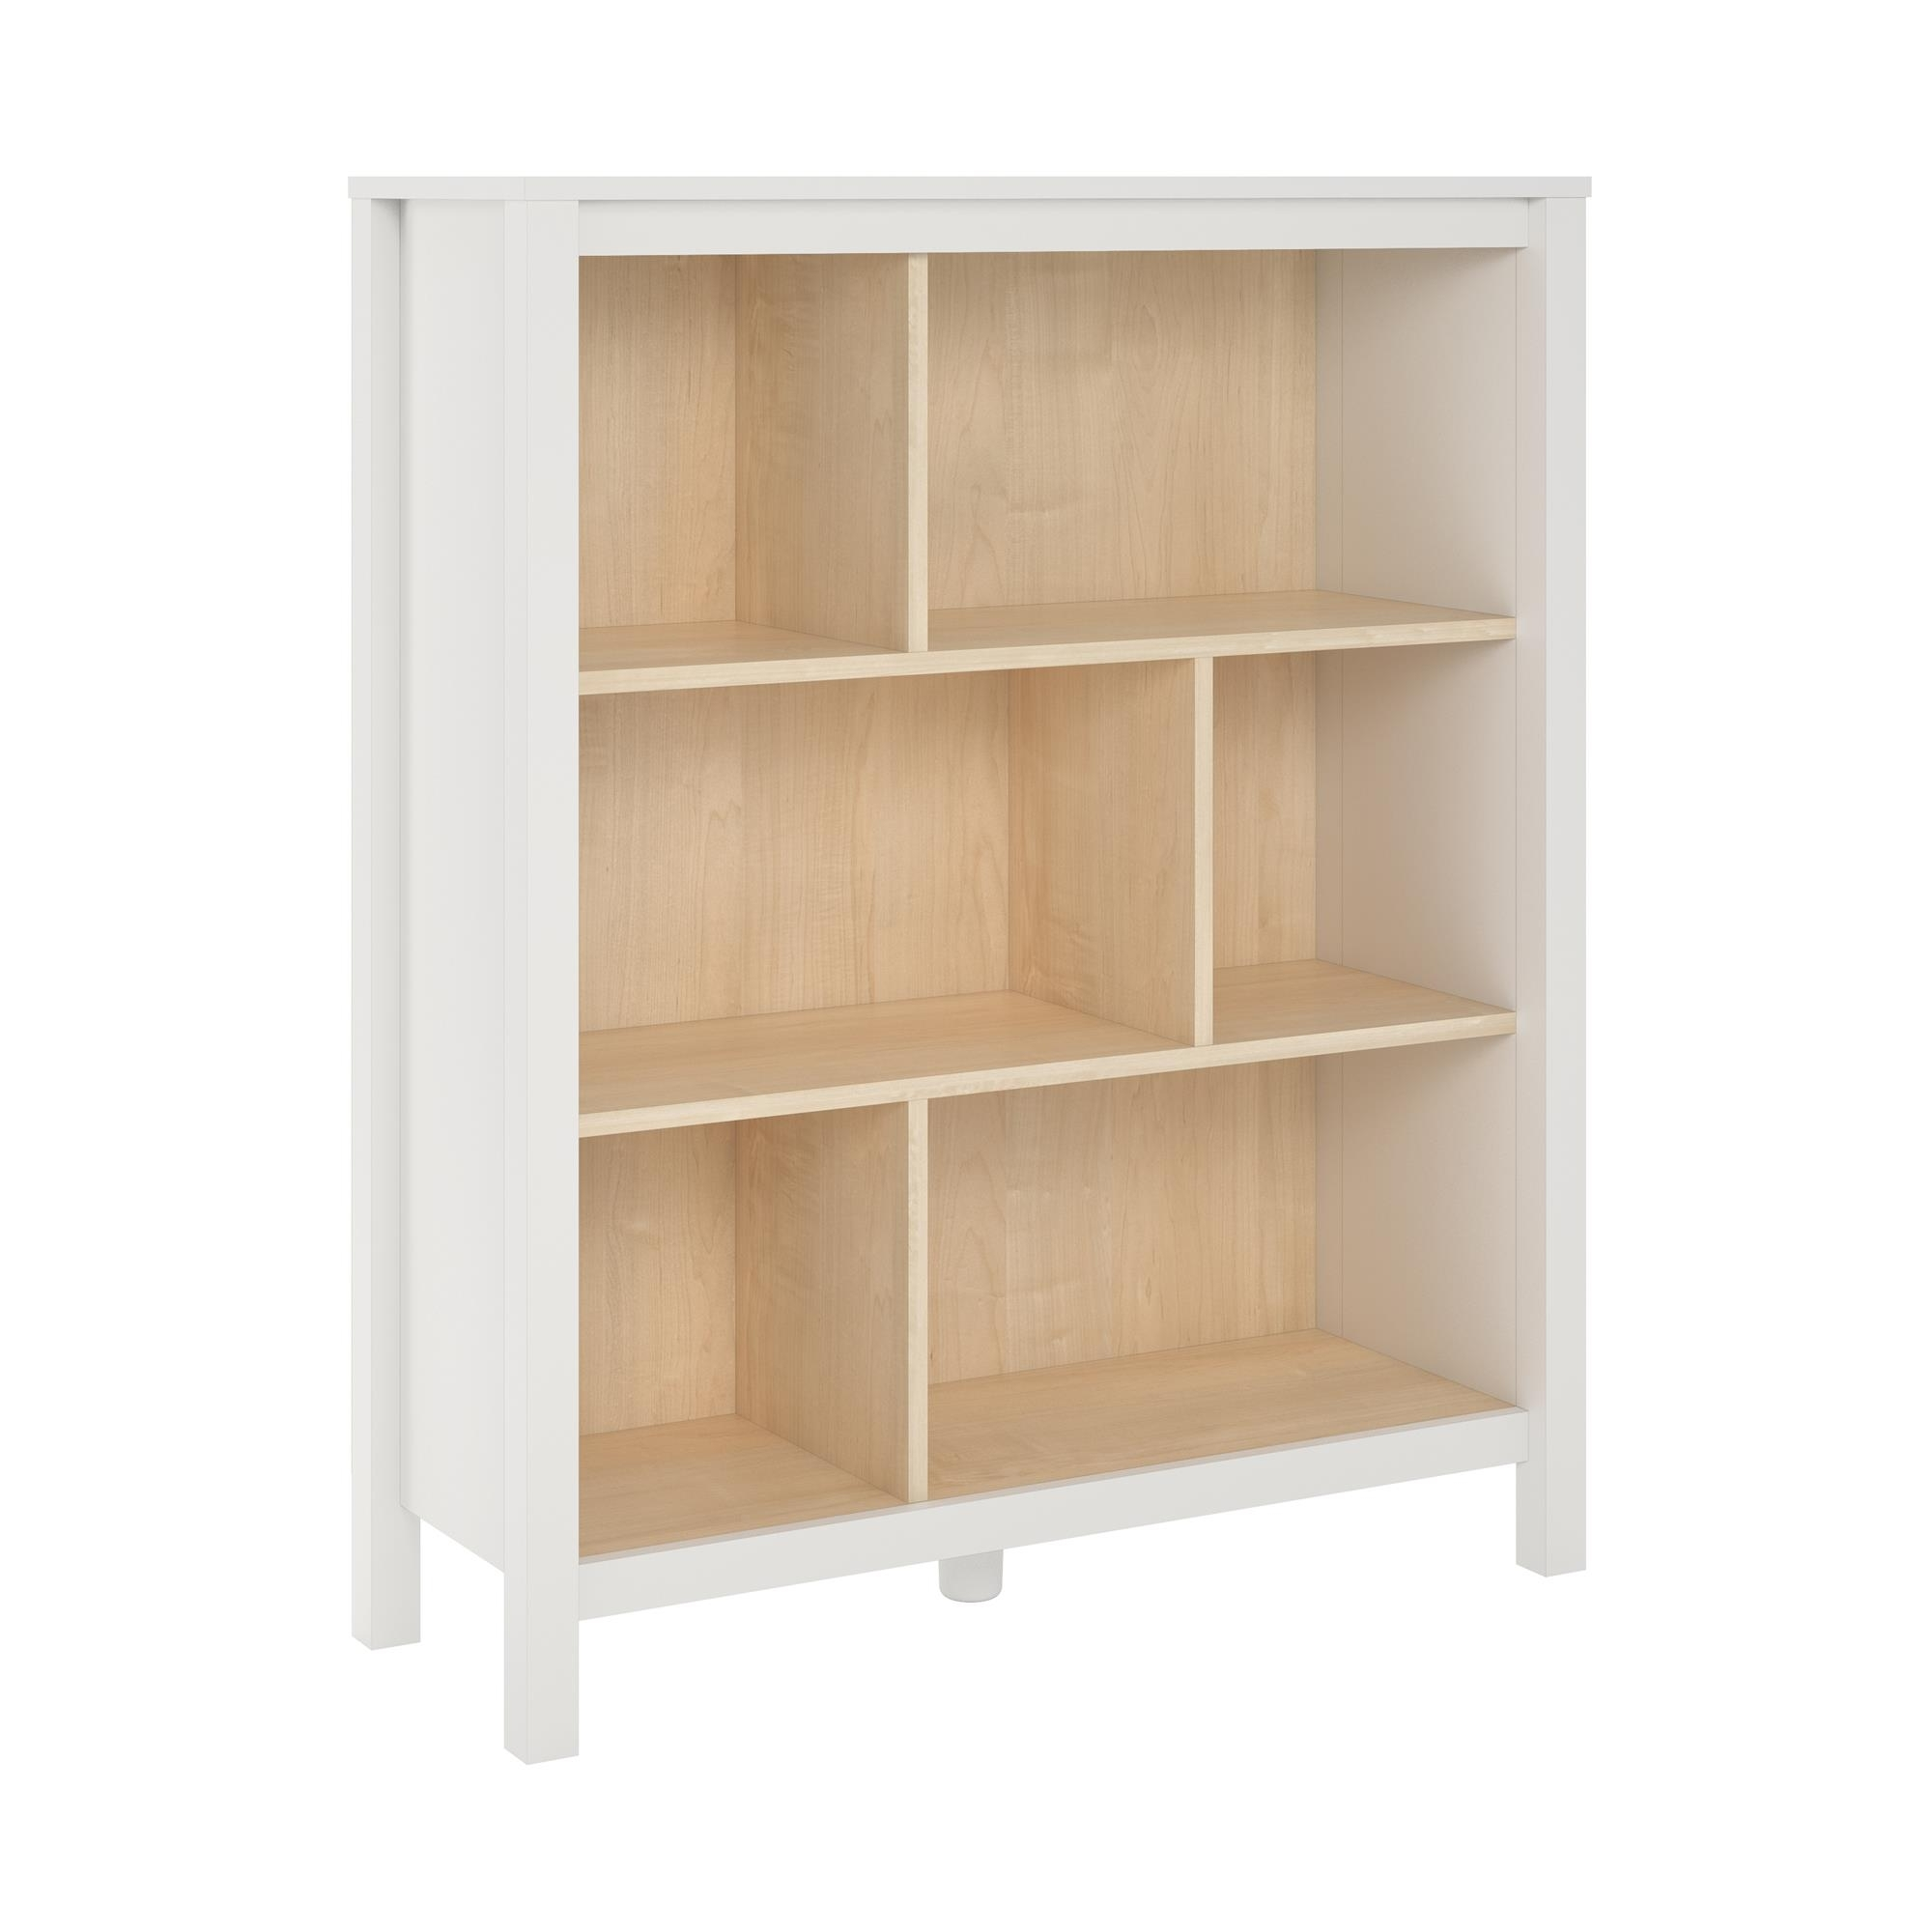 Best And Newest Bookcases For Toddlers Throughout Kids' Bookcases – Walmart (View 3 of 15)